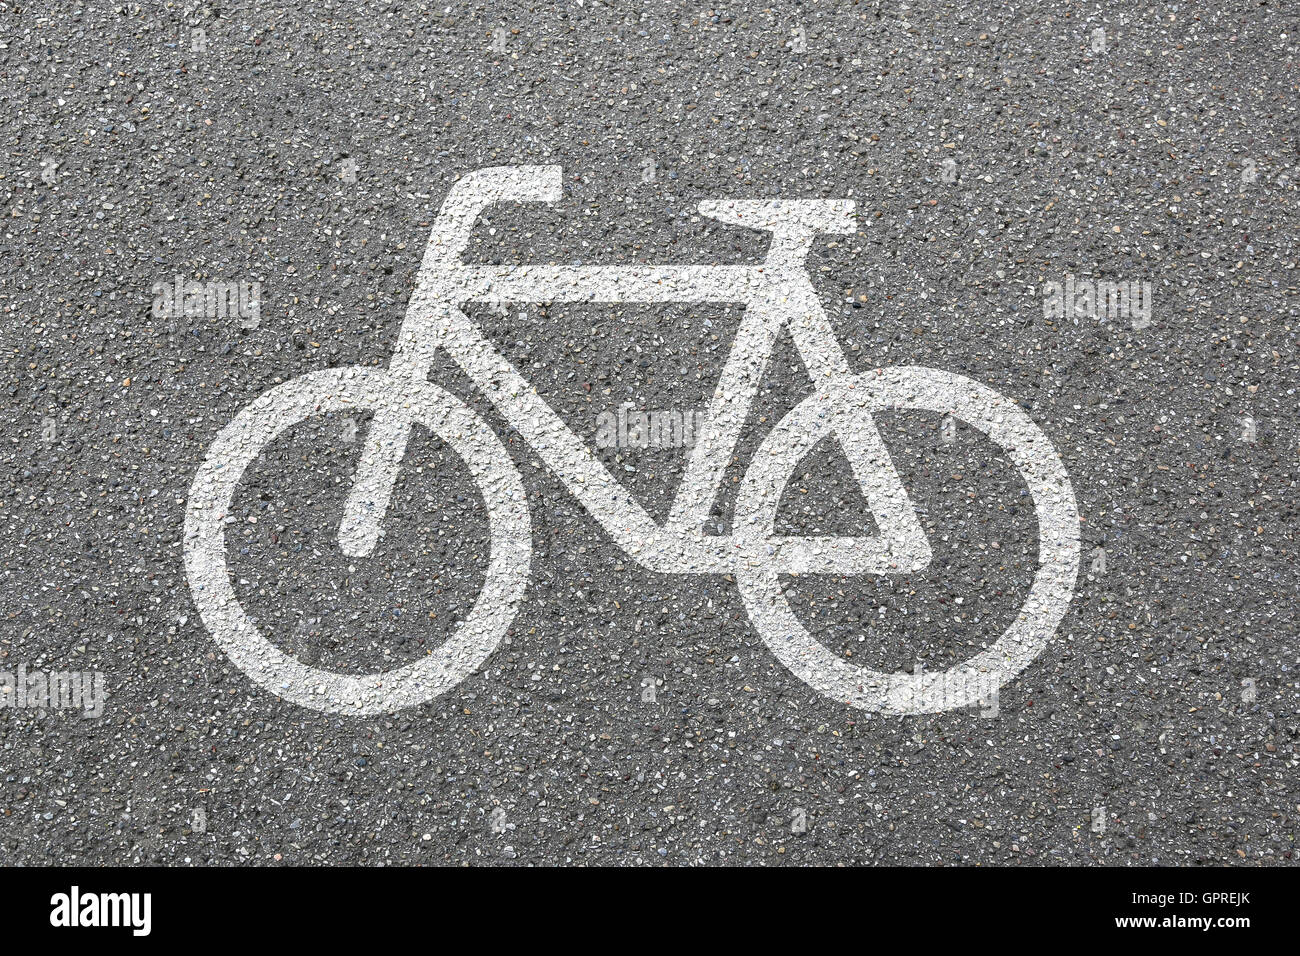 Bike lane path way cycle bicycle road traffic city transport - Stock Image